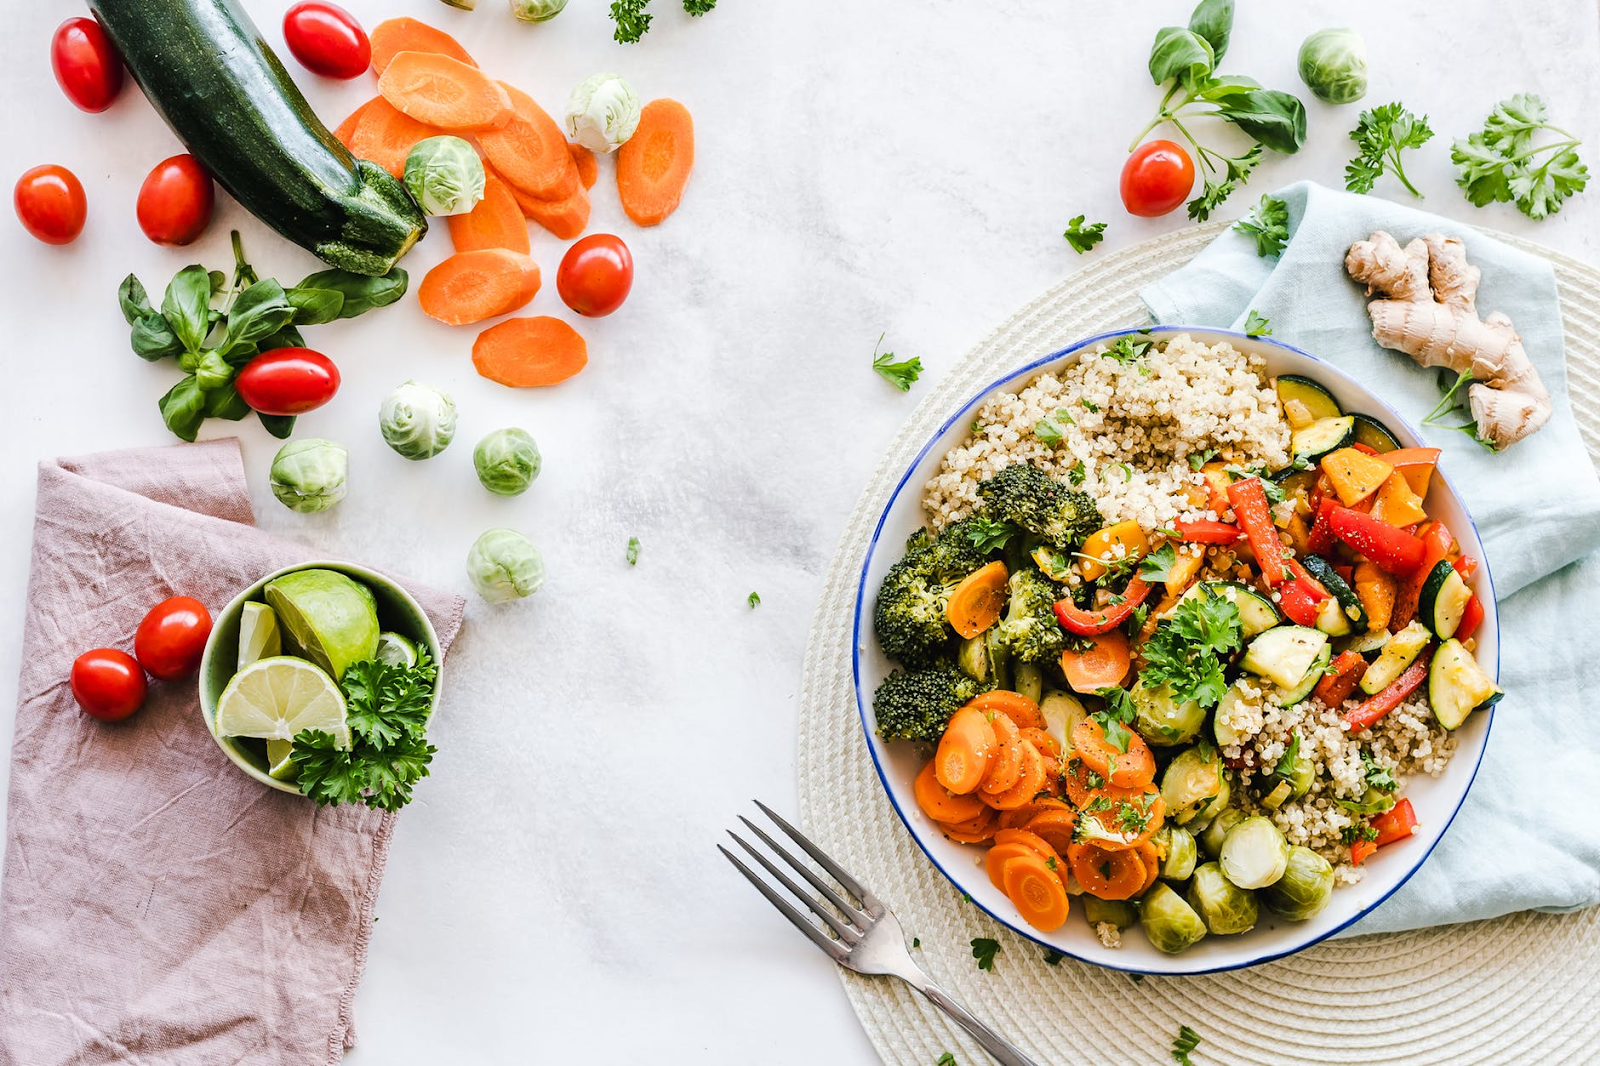 healthy food on a plate accompanied by fresh vegetables